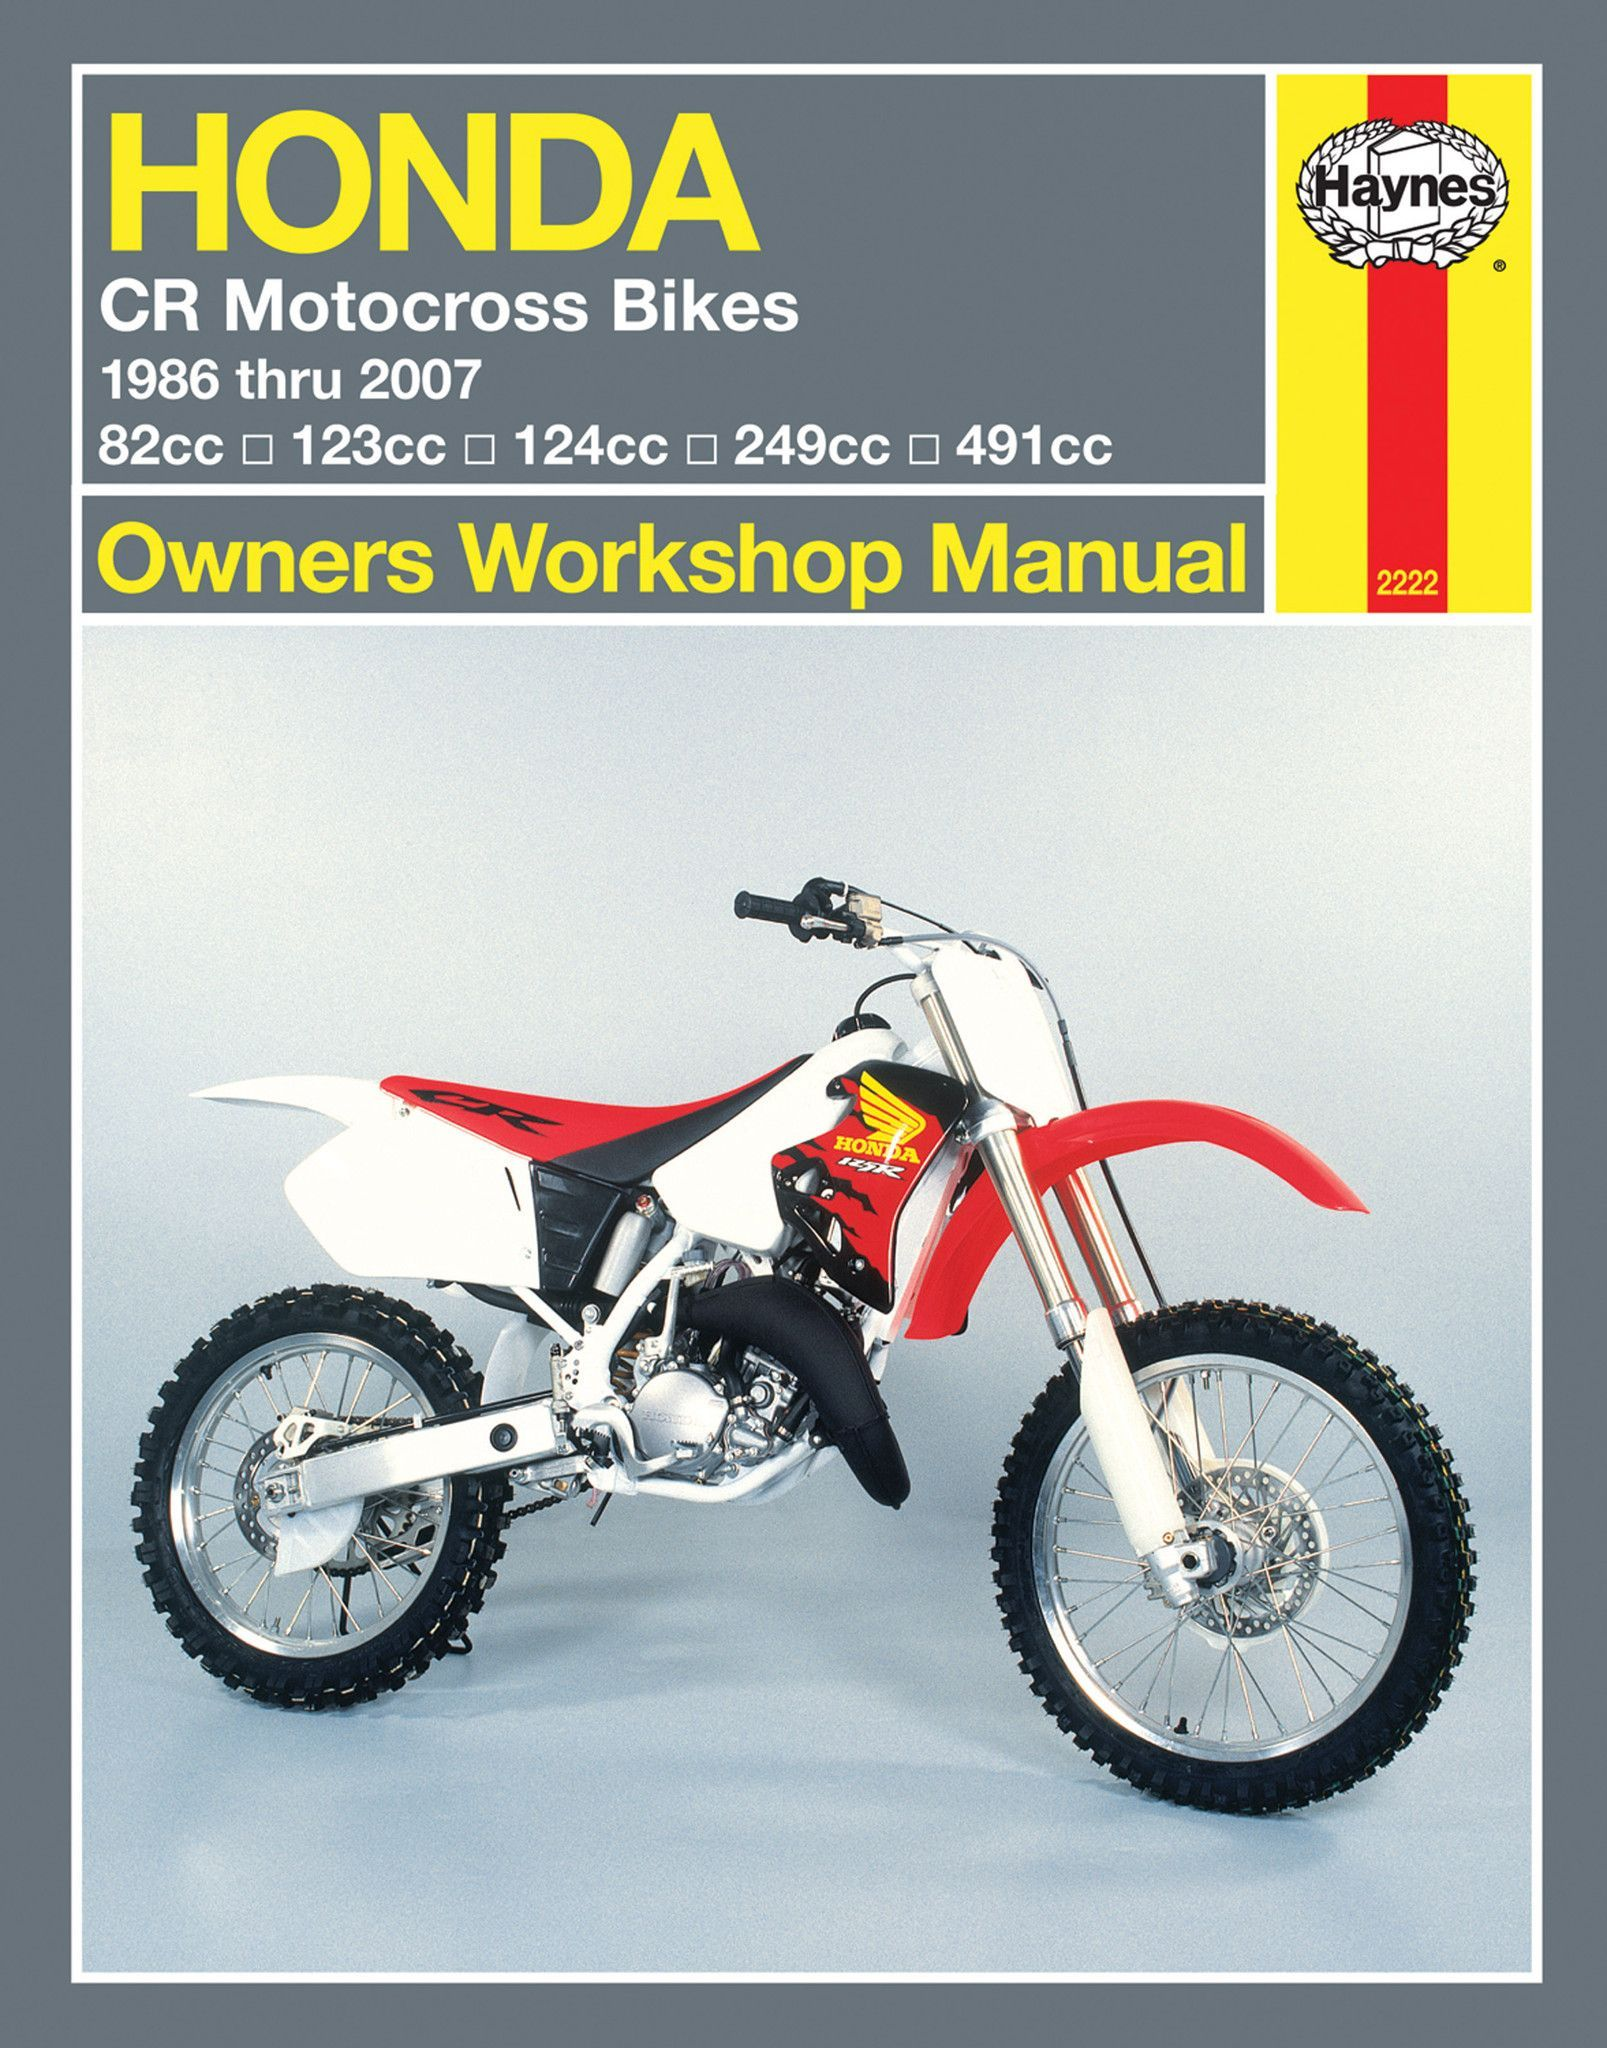 Haynes m2222 repair manual for 1986 07 honda cr80 cr125r cr250r haynes service repair manual part number m2222 step by step procedures easy to follow photos complete troubleshooting section valuable short cuts fandeluxe Images